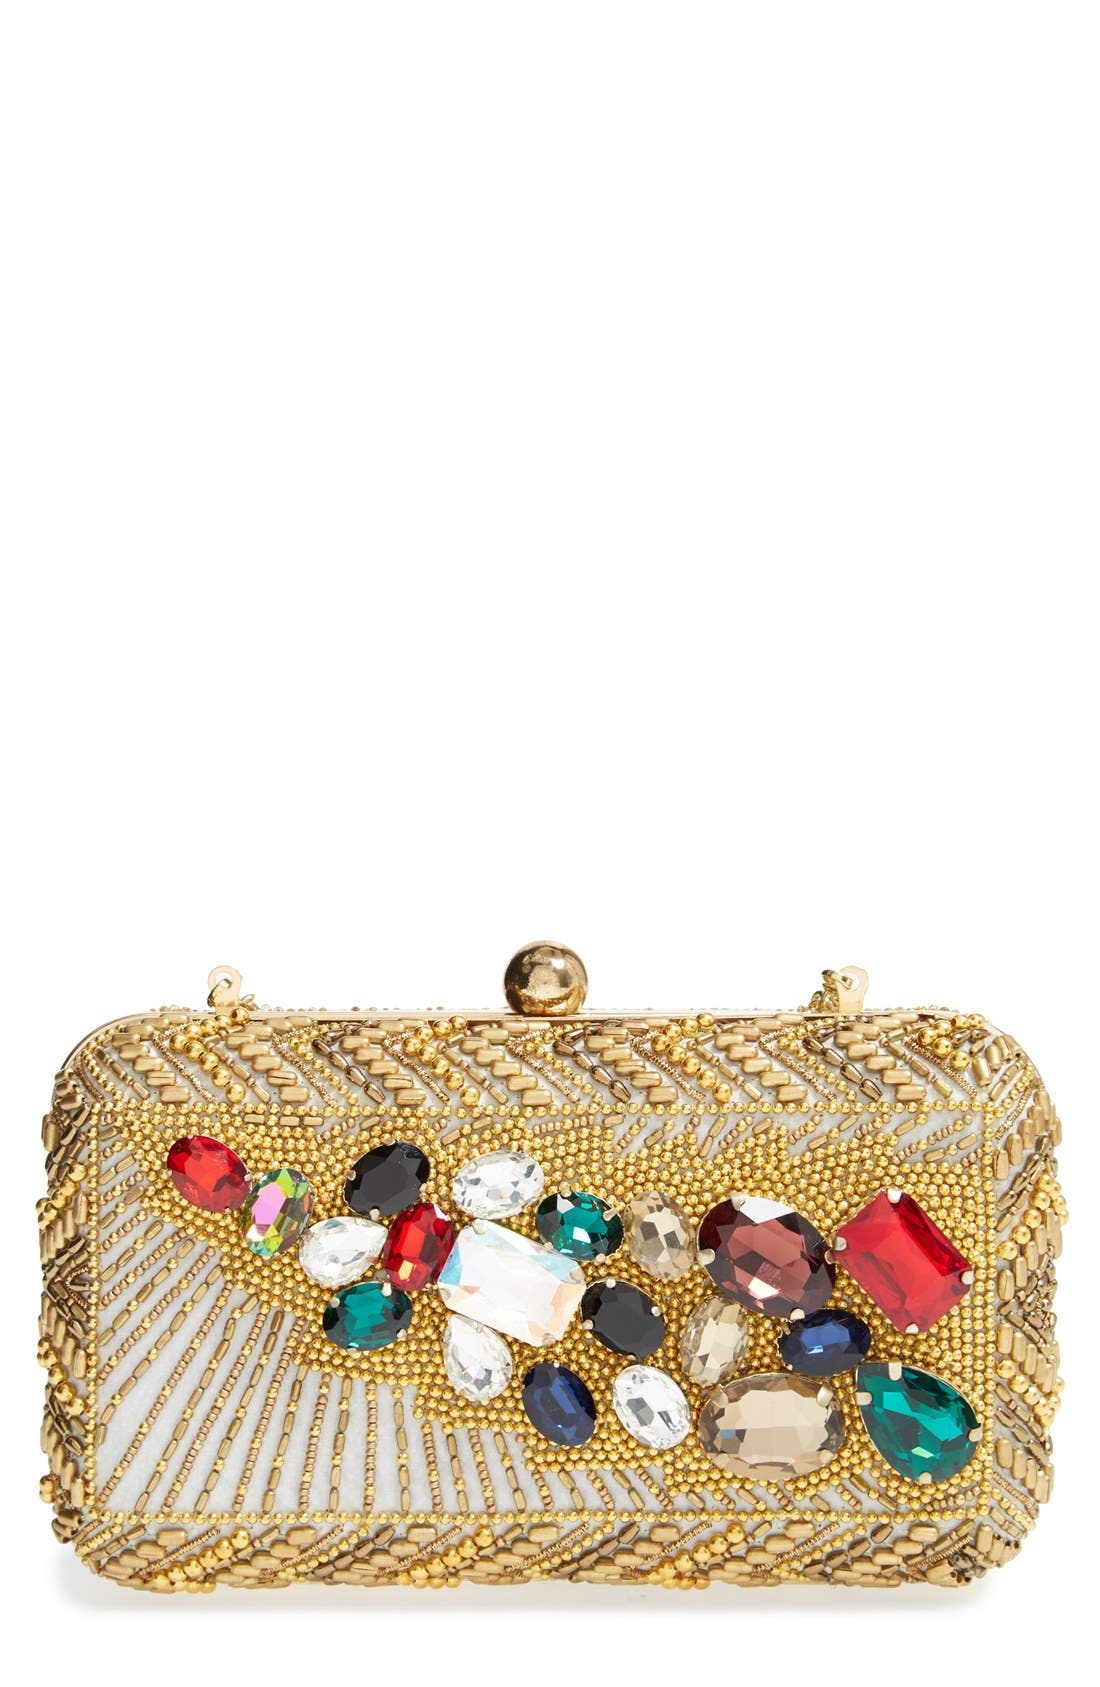 Alternate Image 1 Selected - Natasha Couture 'Left Bank' Embellished Box Clutch